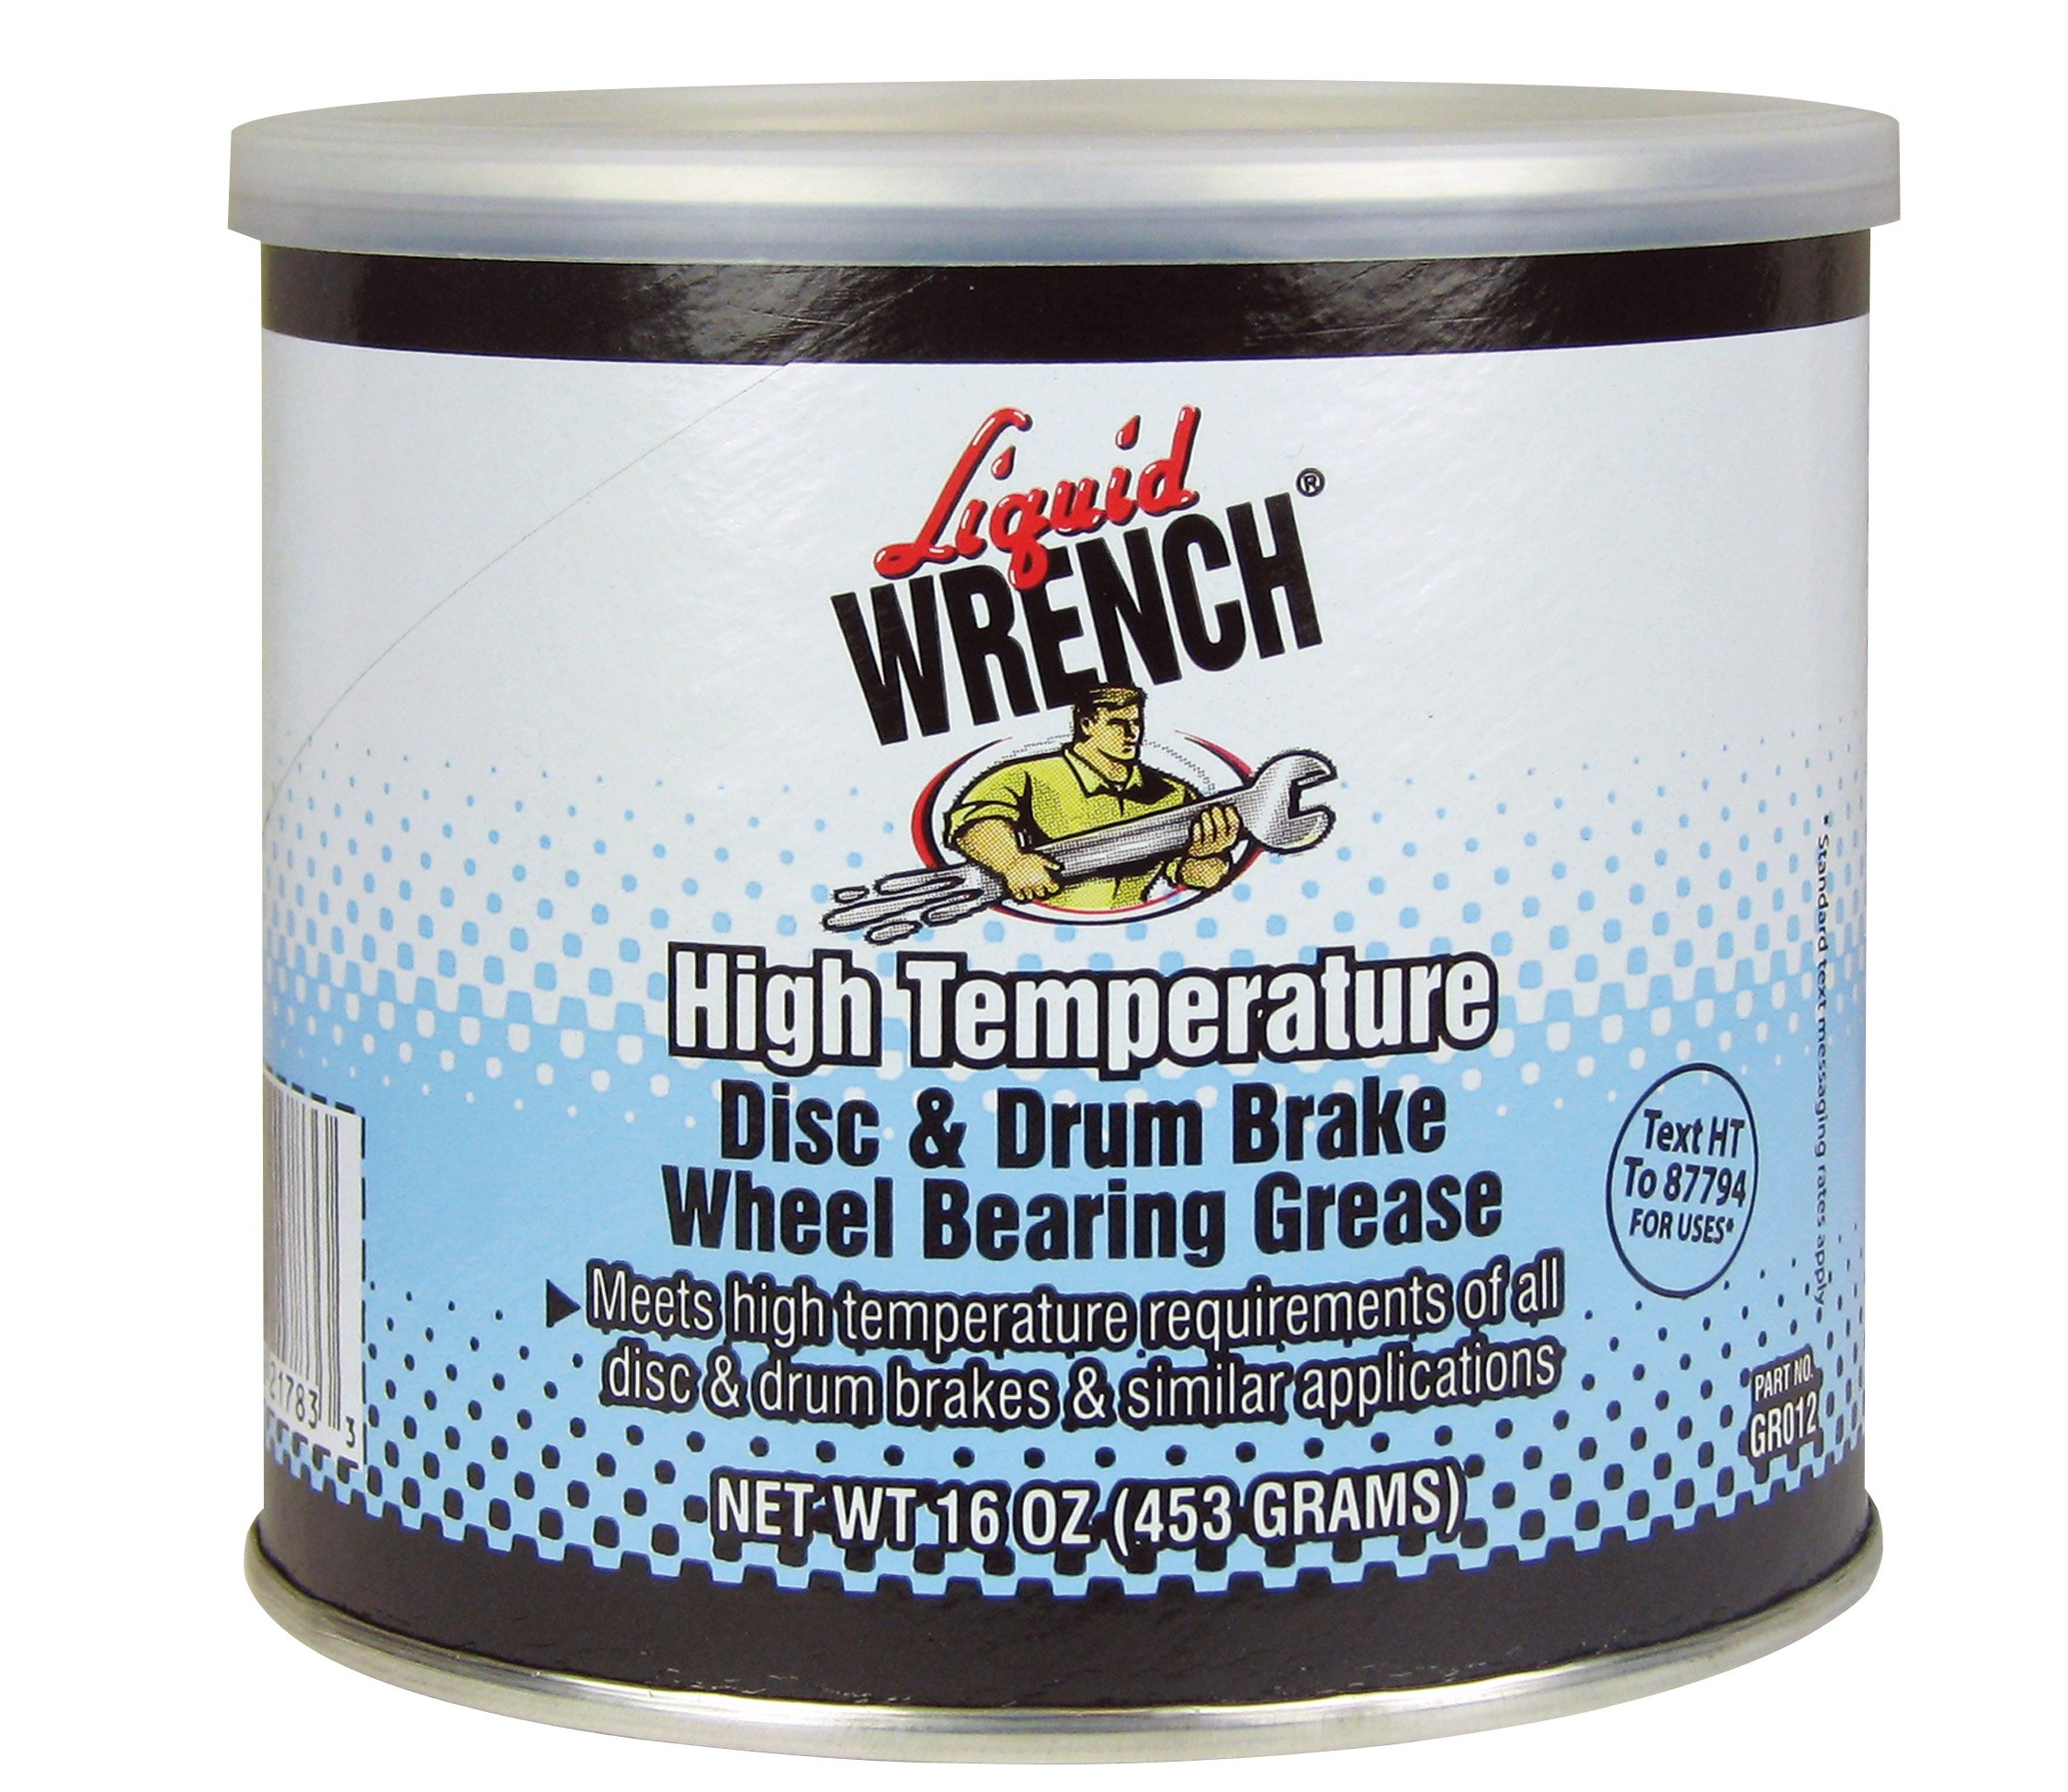 Liquid Wrench GR012 Disc and Drum Brake Wheel Bearing Grease - 16 oz.